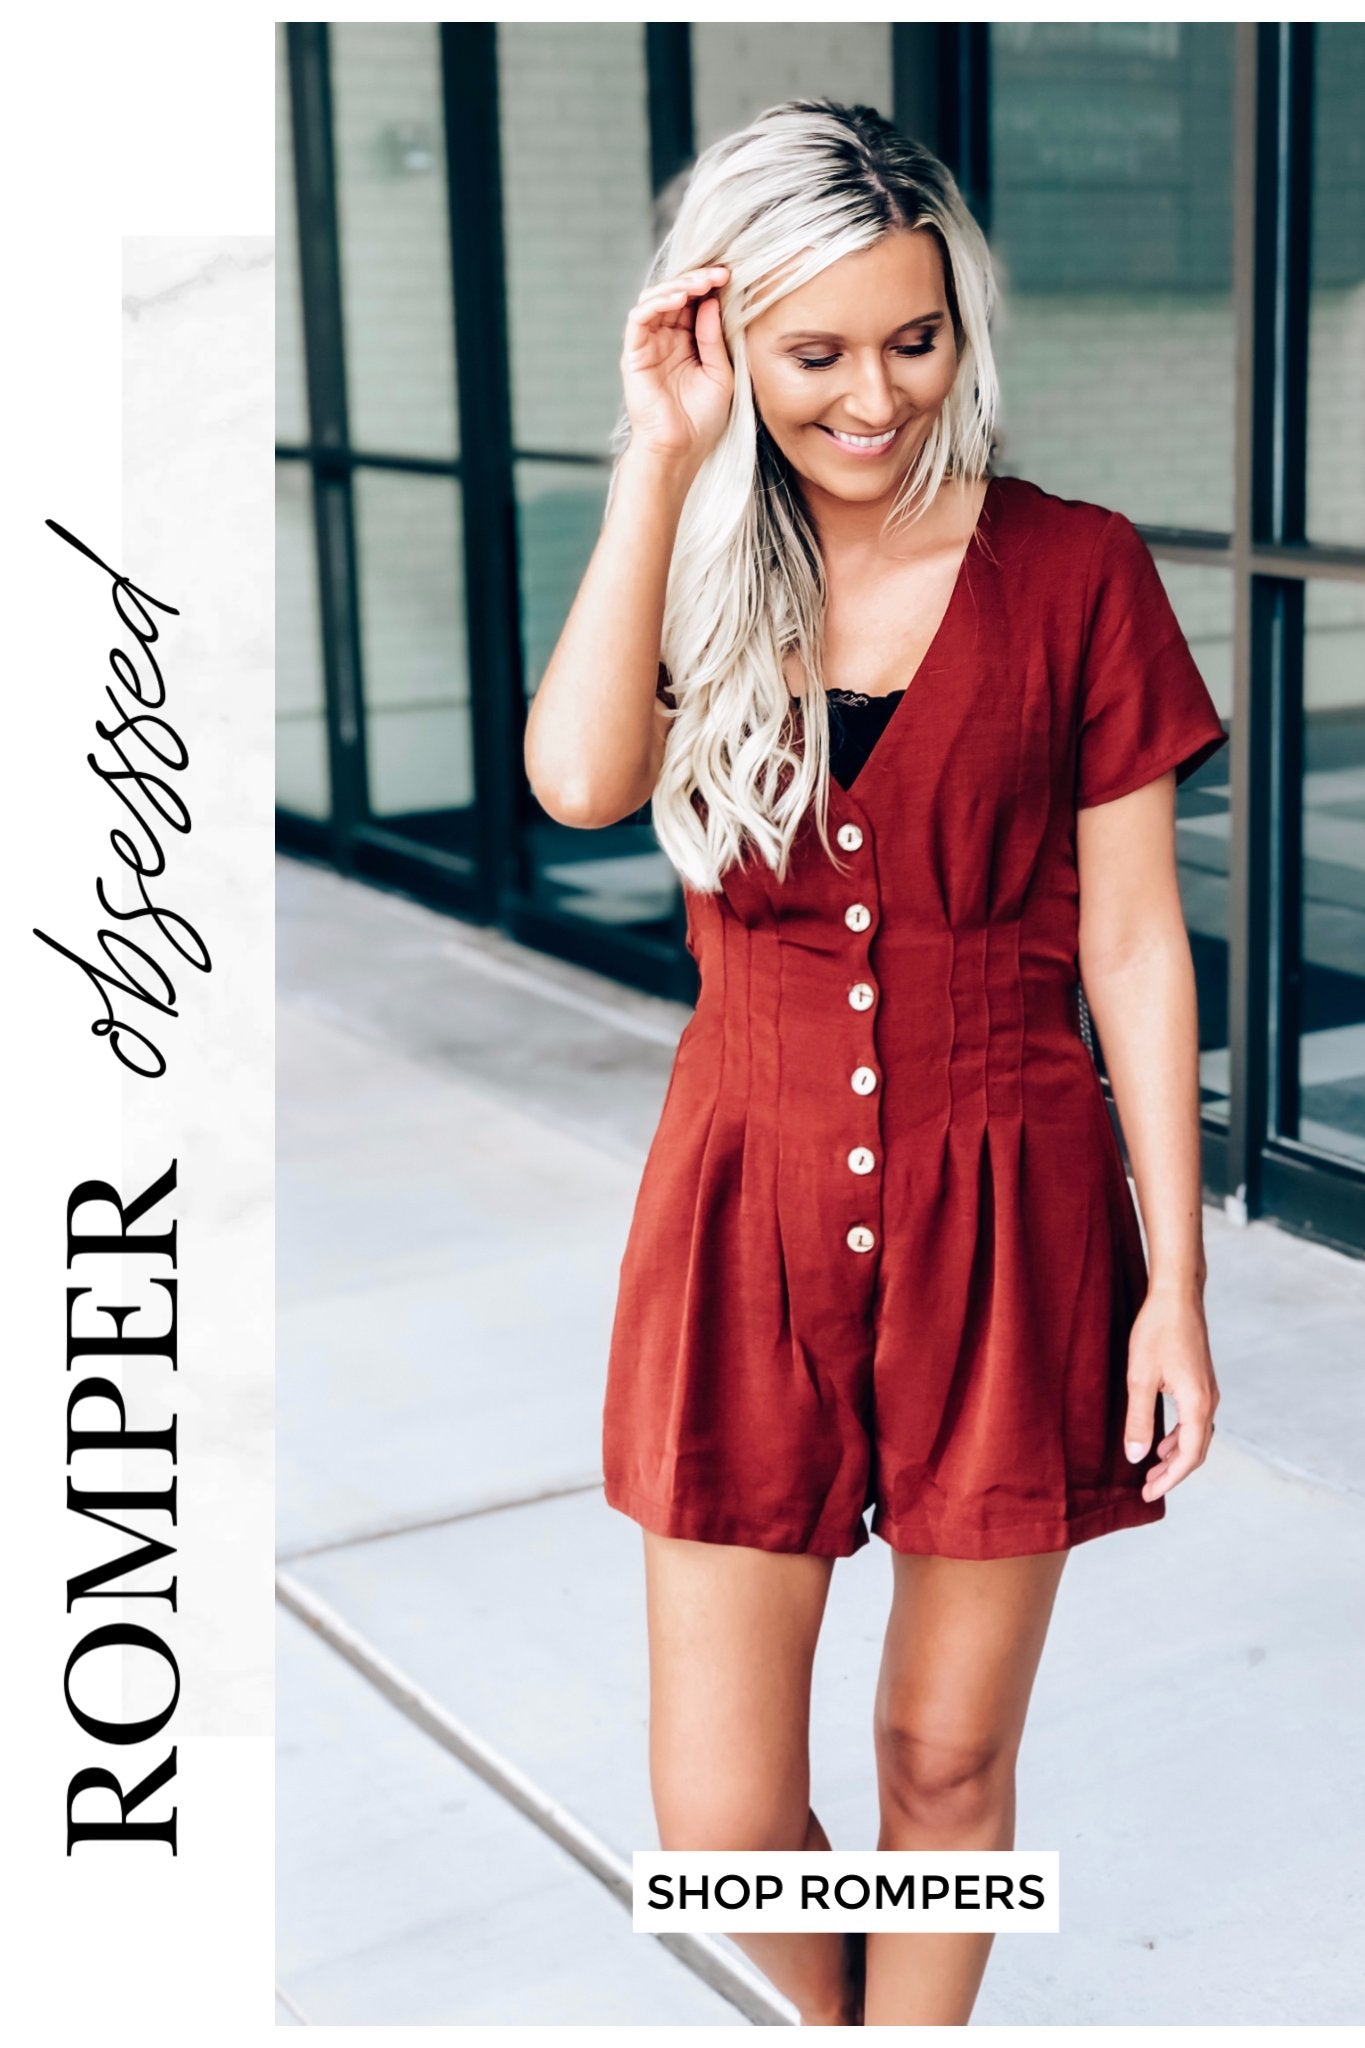 Krush Boutique | Women's Affordable Boutique Clothing